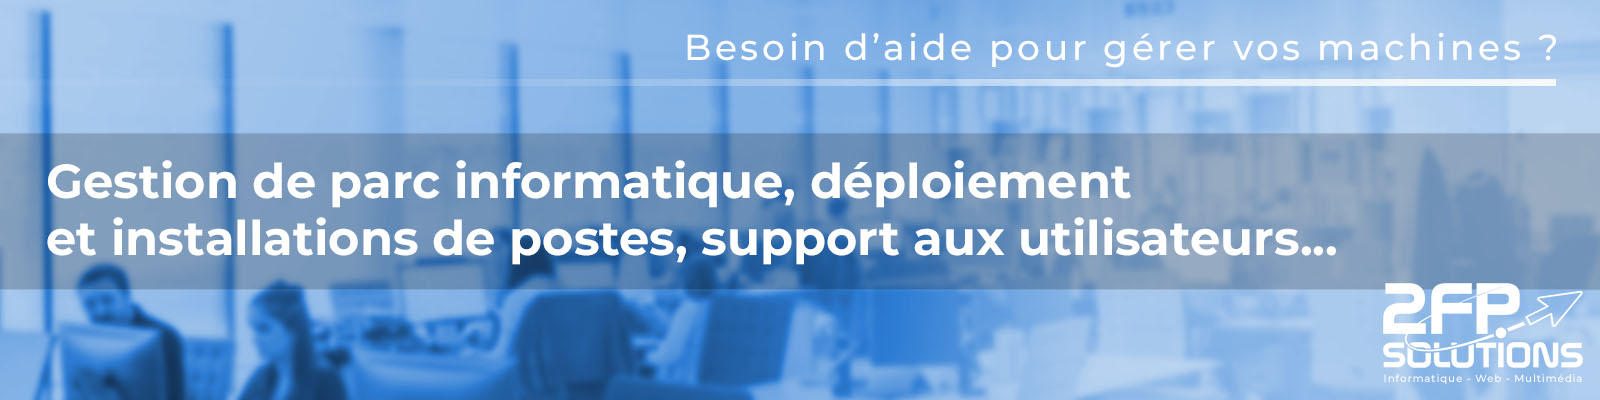 banniere helpdesk 1600 x 400 2 2FP Solutions